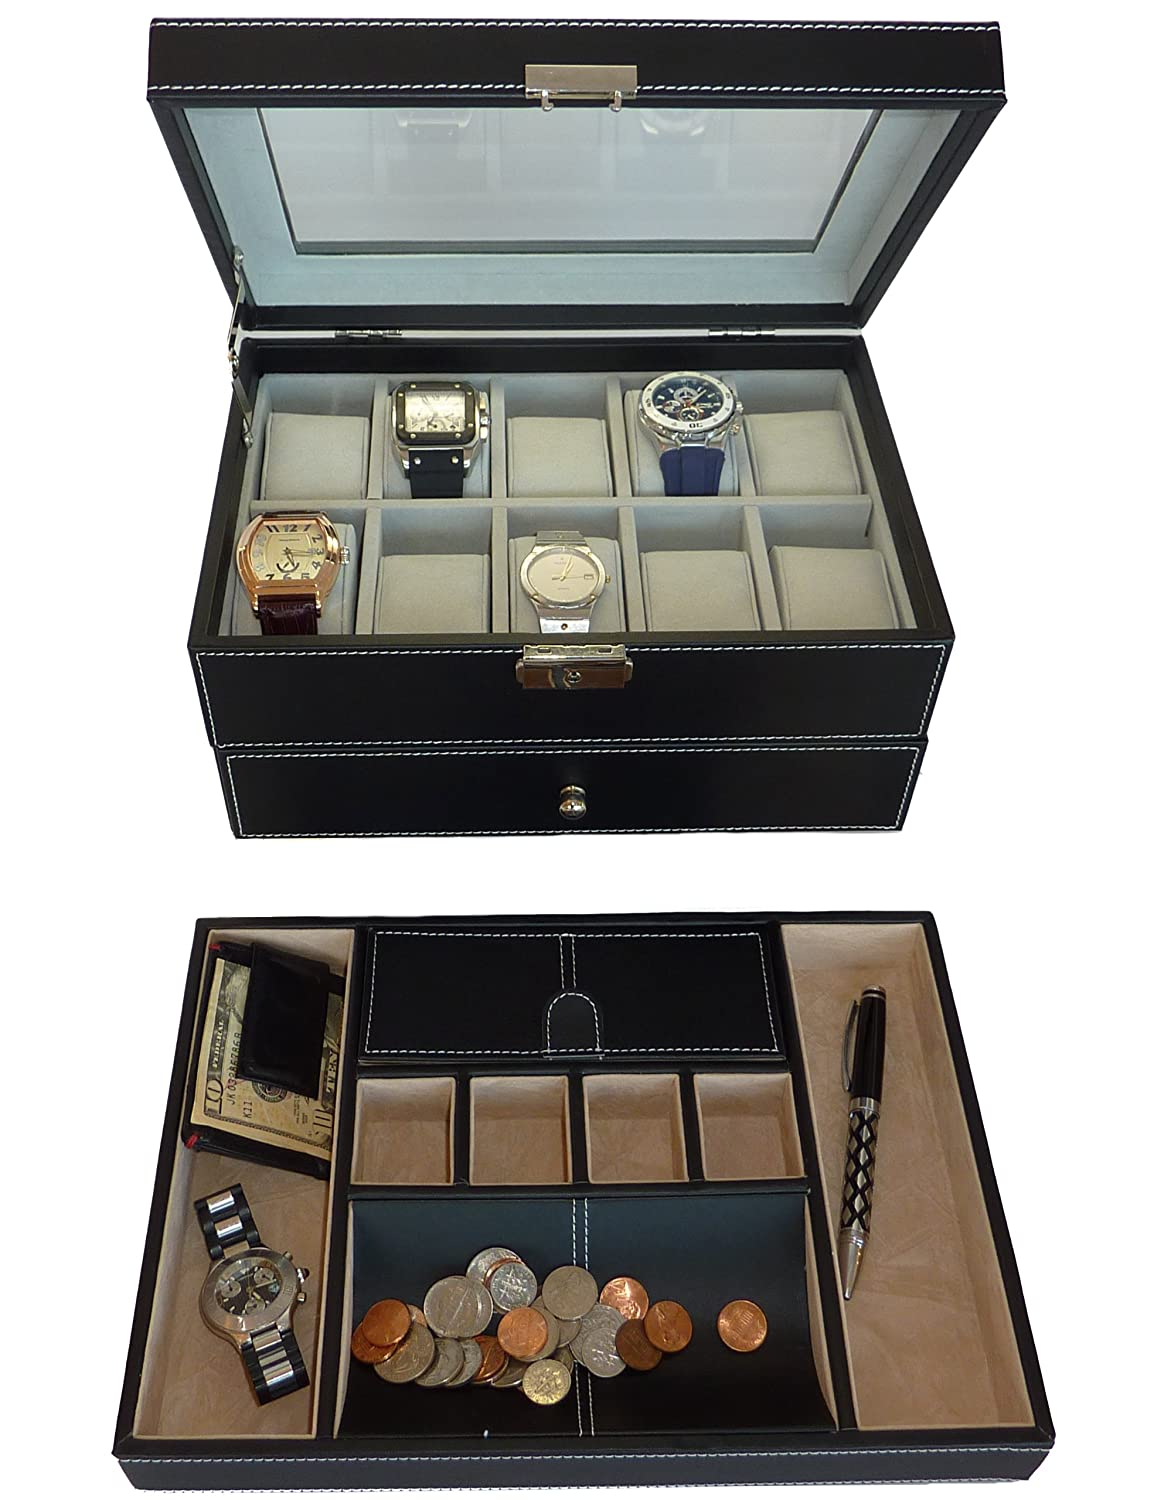 Amazon.com Two Piece Menu0027s Executive Gift Set Black Valet Tray and 20 Slot Watch Display Case Box With Glass Top Watches  sc 1 st  Amazon.com & Amazon.com: Two Piece Menu0027s Executive Gift Set Black Valet Tray ... Aboutintivar.Com